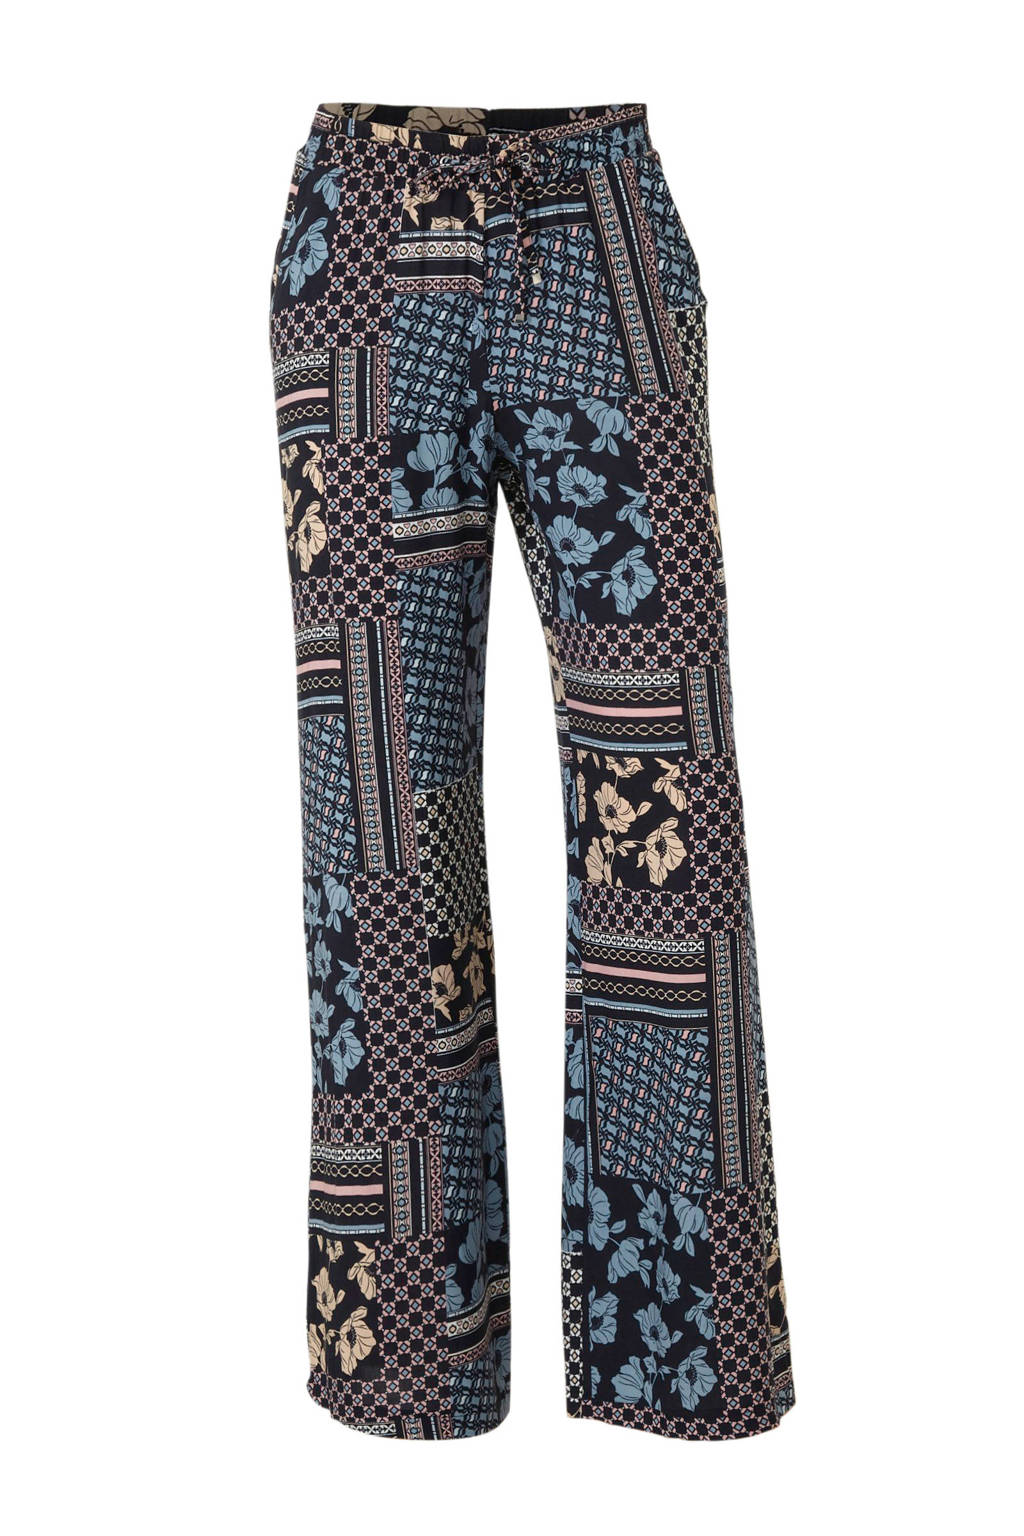 C&A Yessica loose fit broek met all over print donkerblauw/roze, Donkerblauw/roze